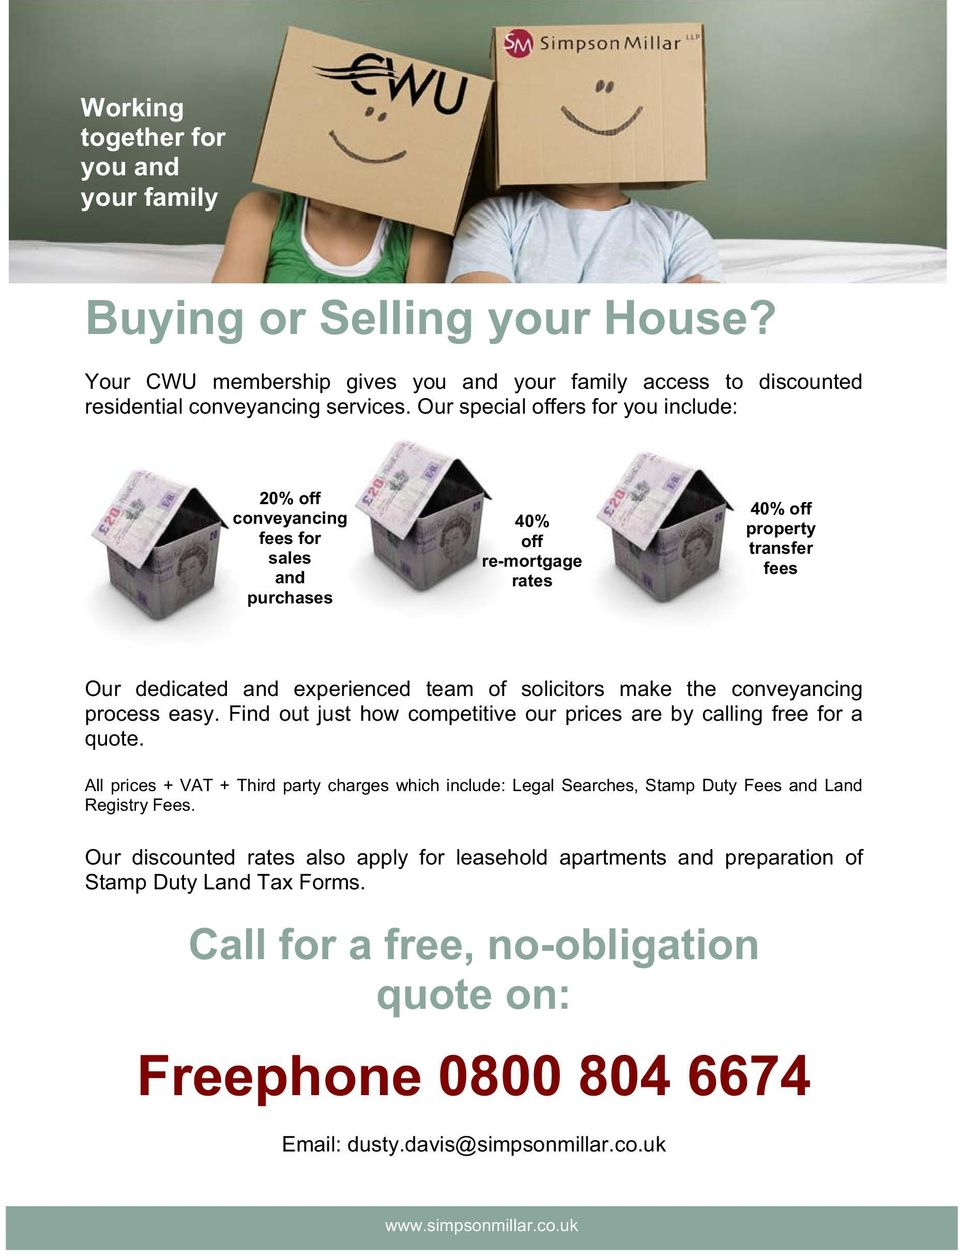 make the conveyancing process easy. Find out just how competitive our prices are by calling free for a quote.